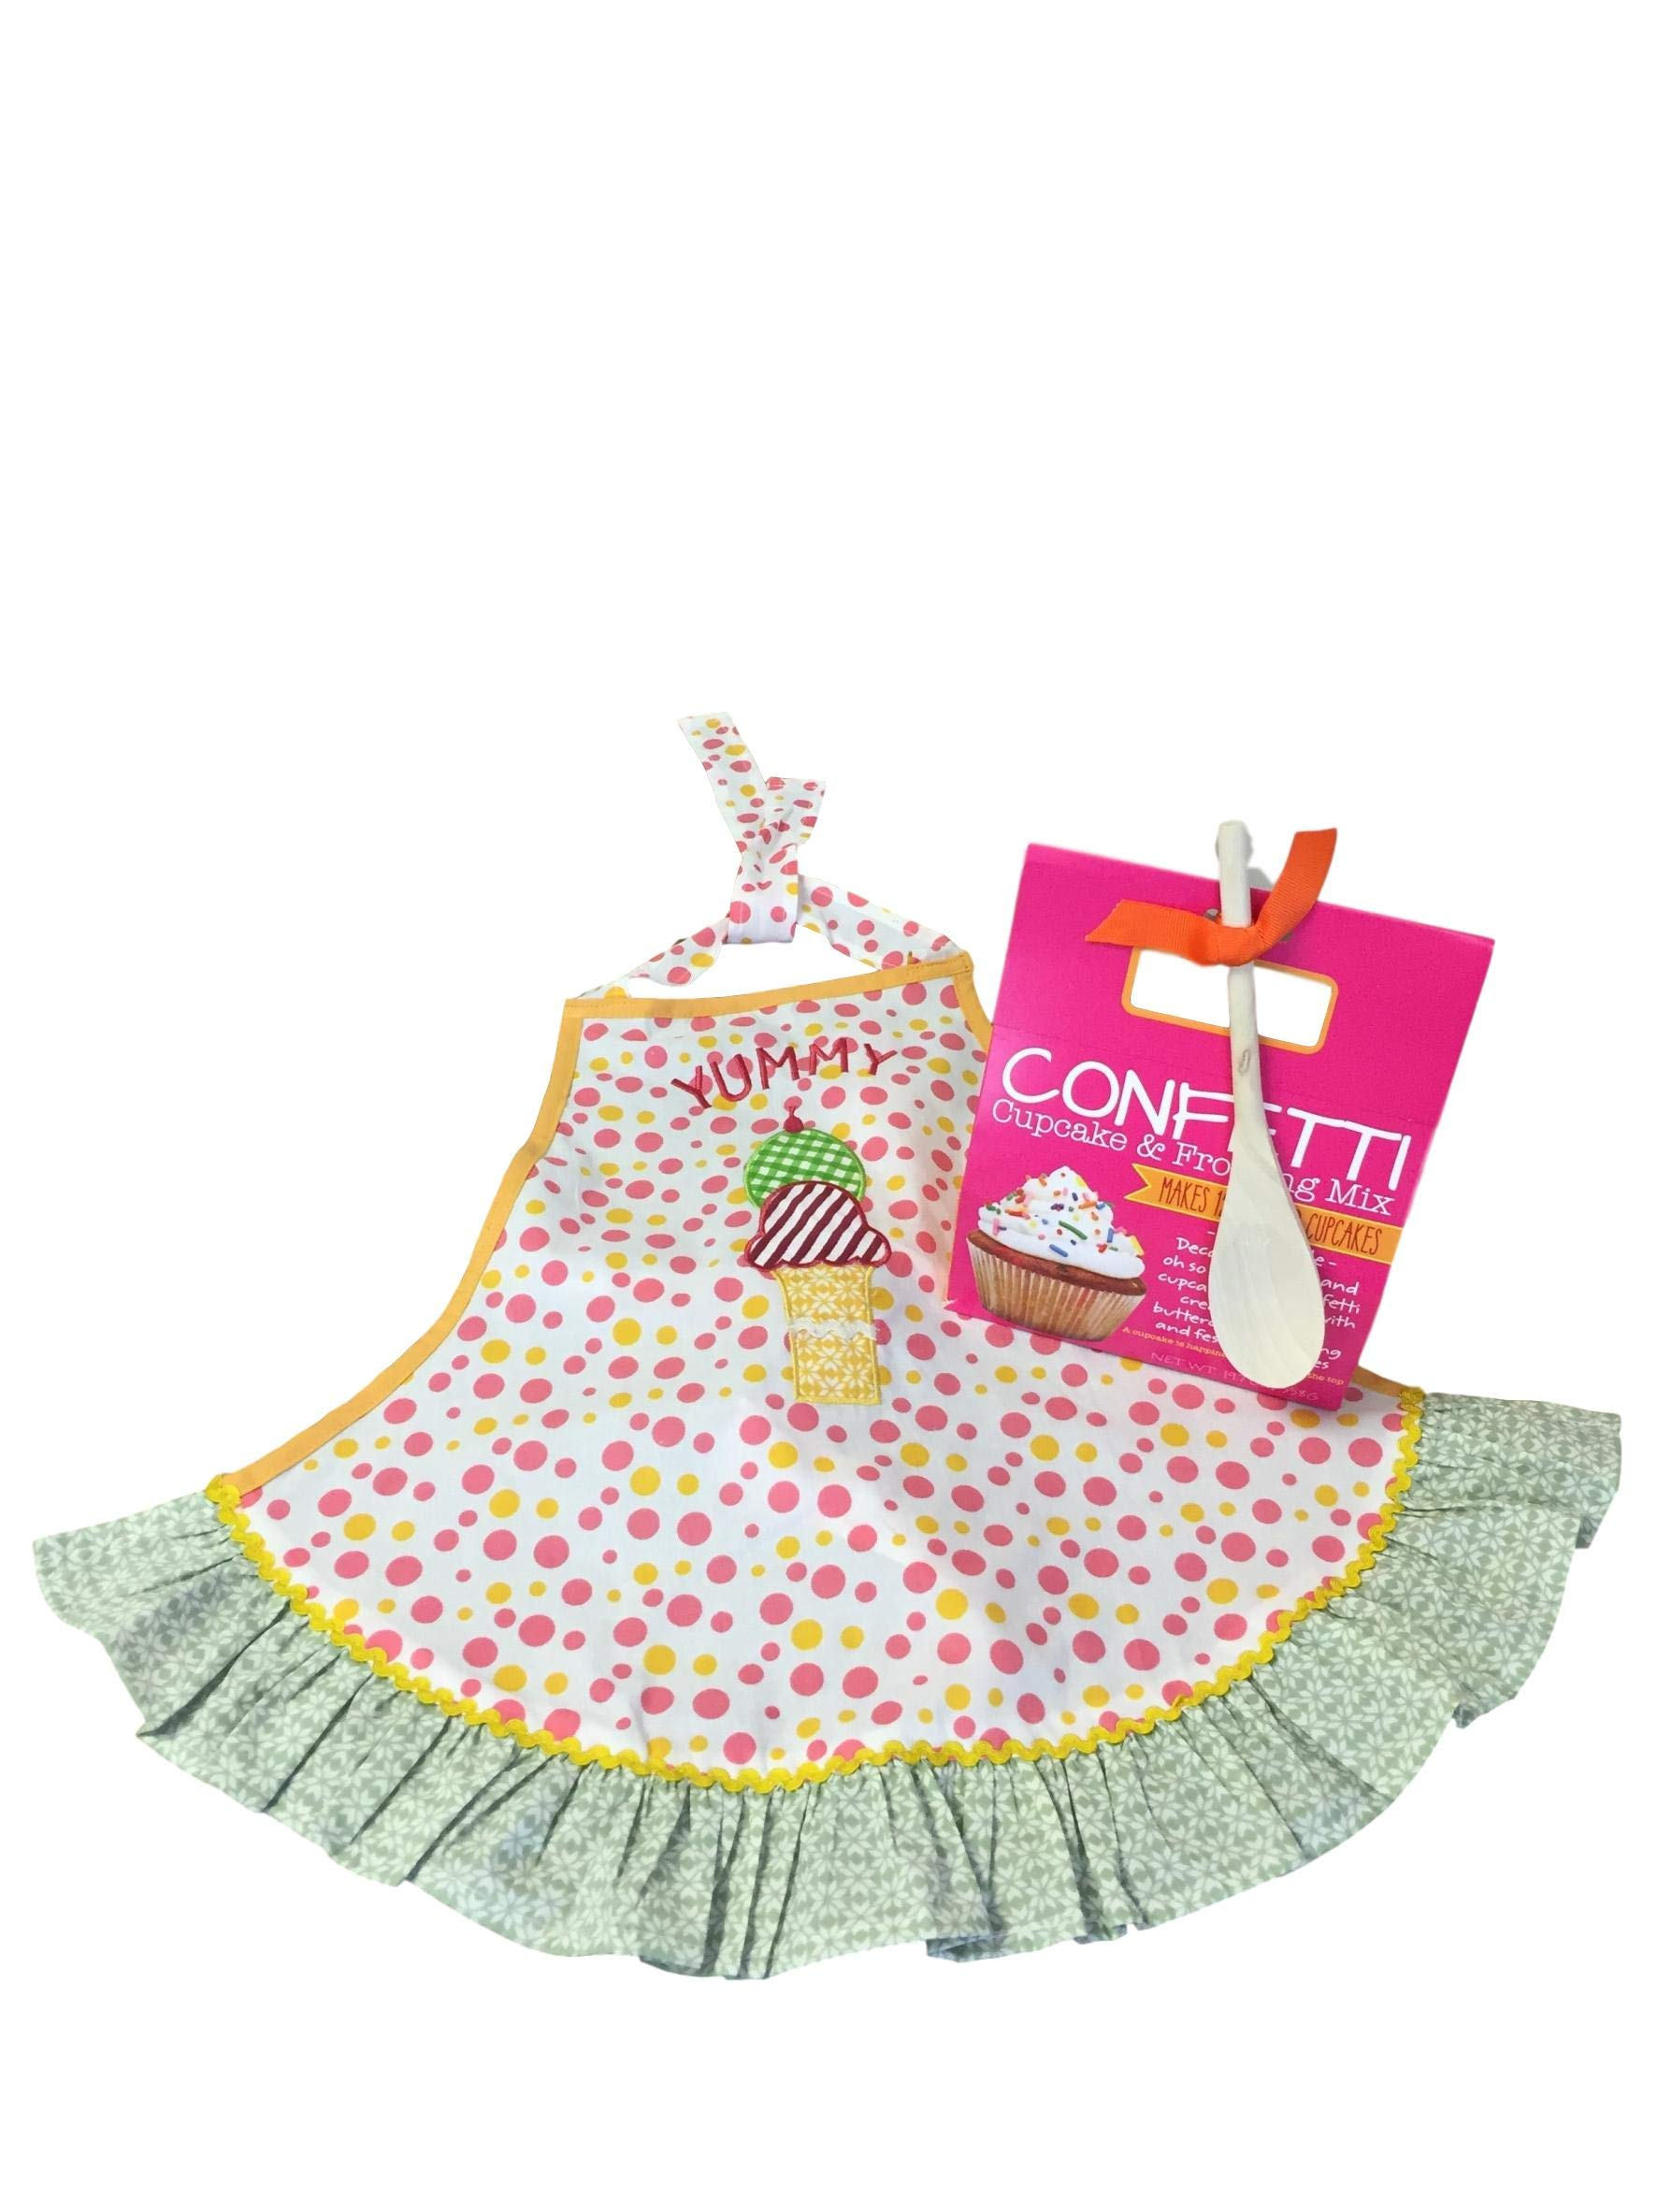 Baking Bundle with Girl's 'Yummy' Apron and Confetti Cupcake & Frosting Kit